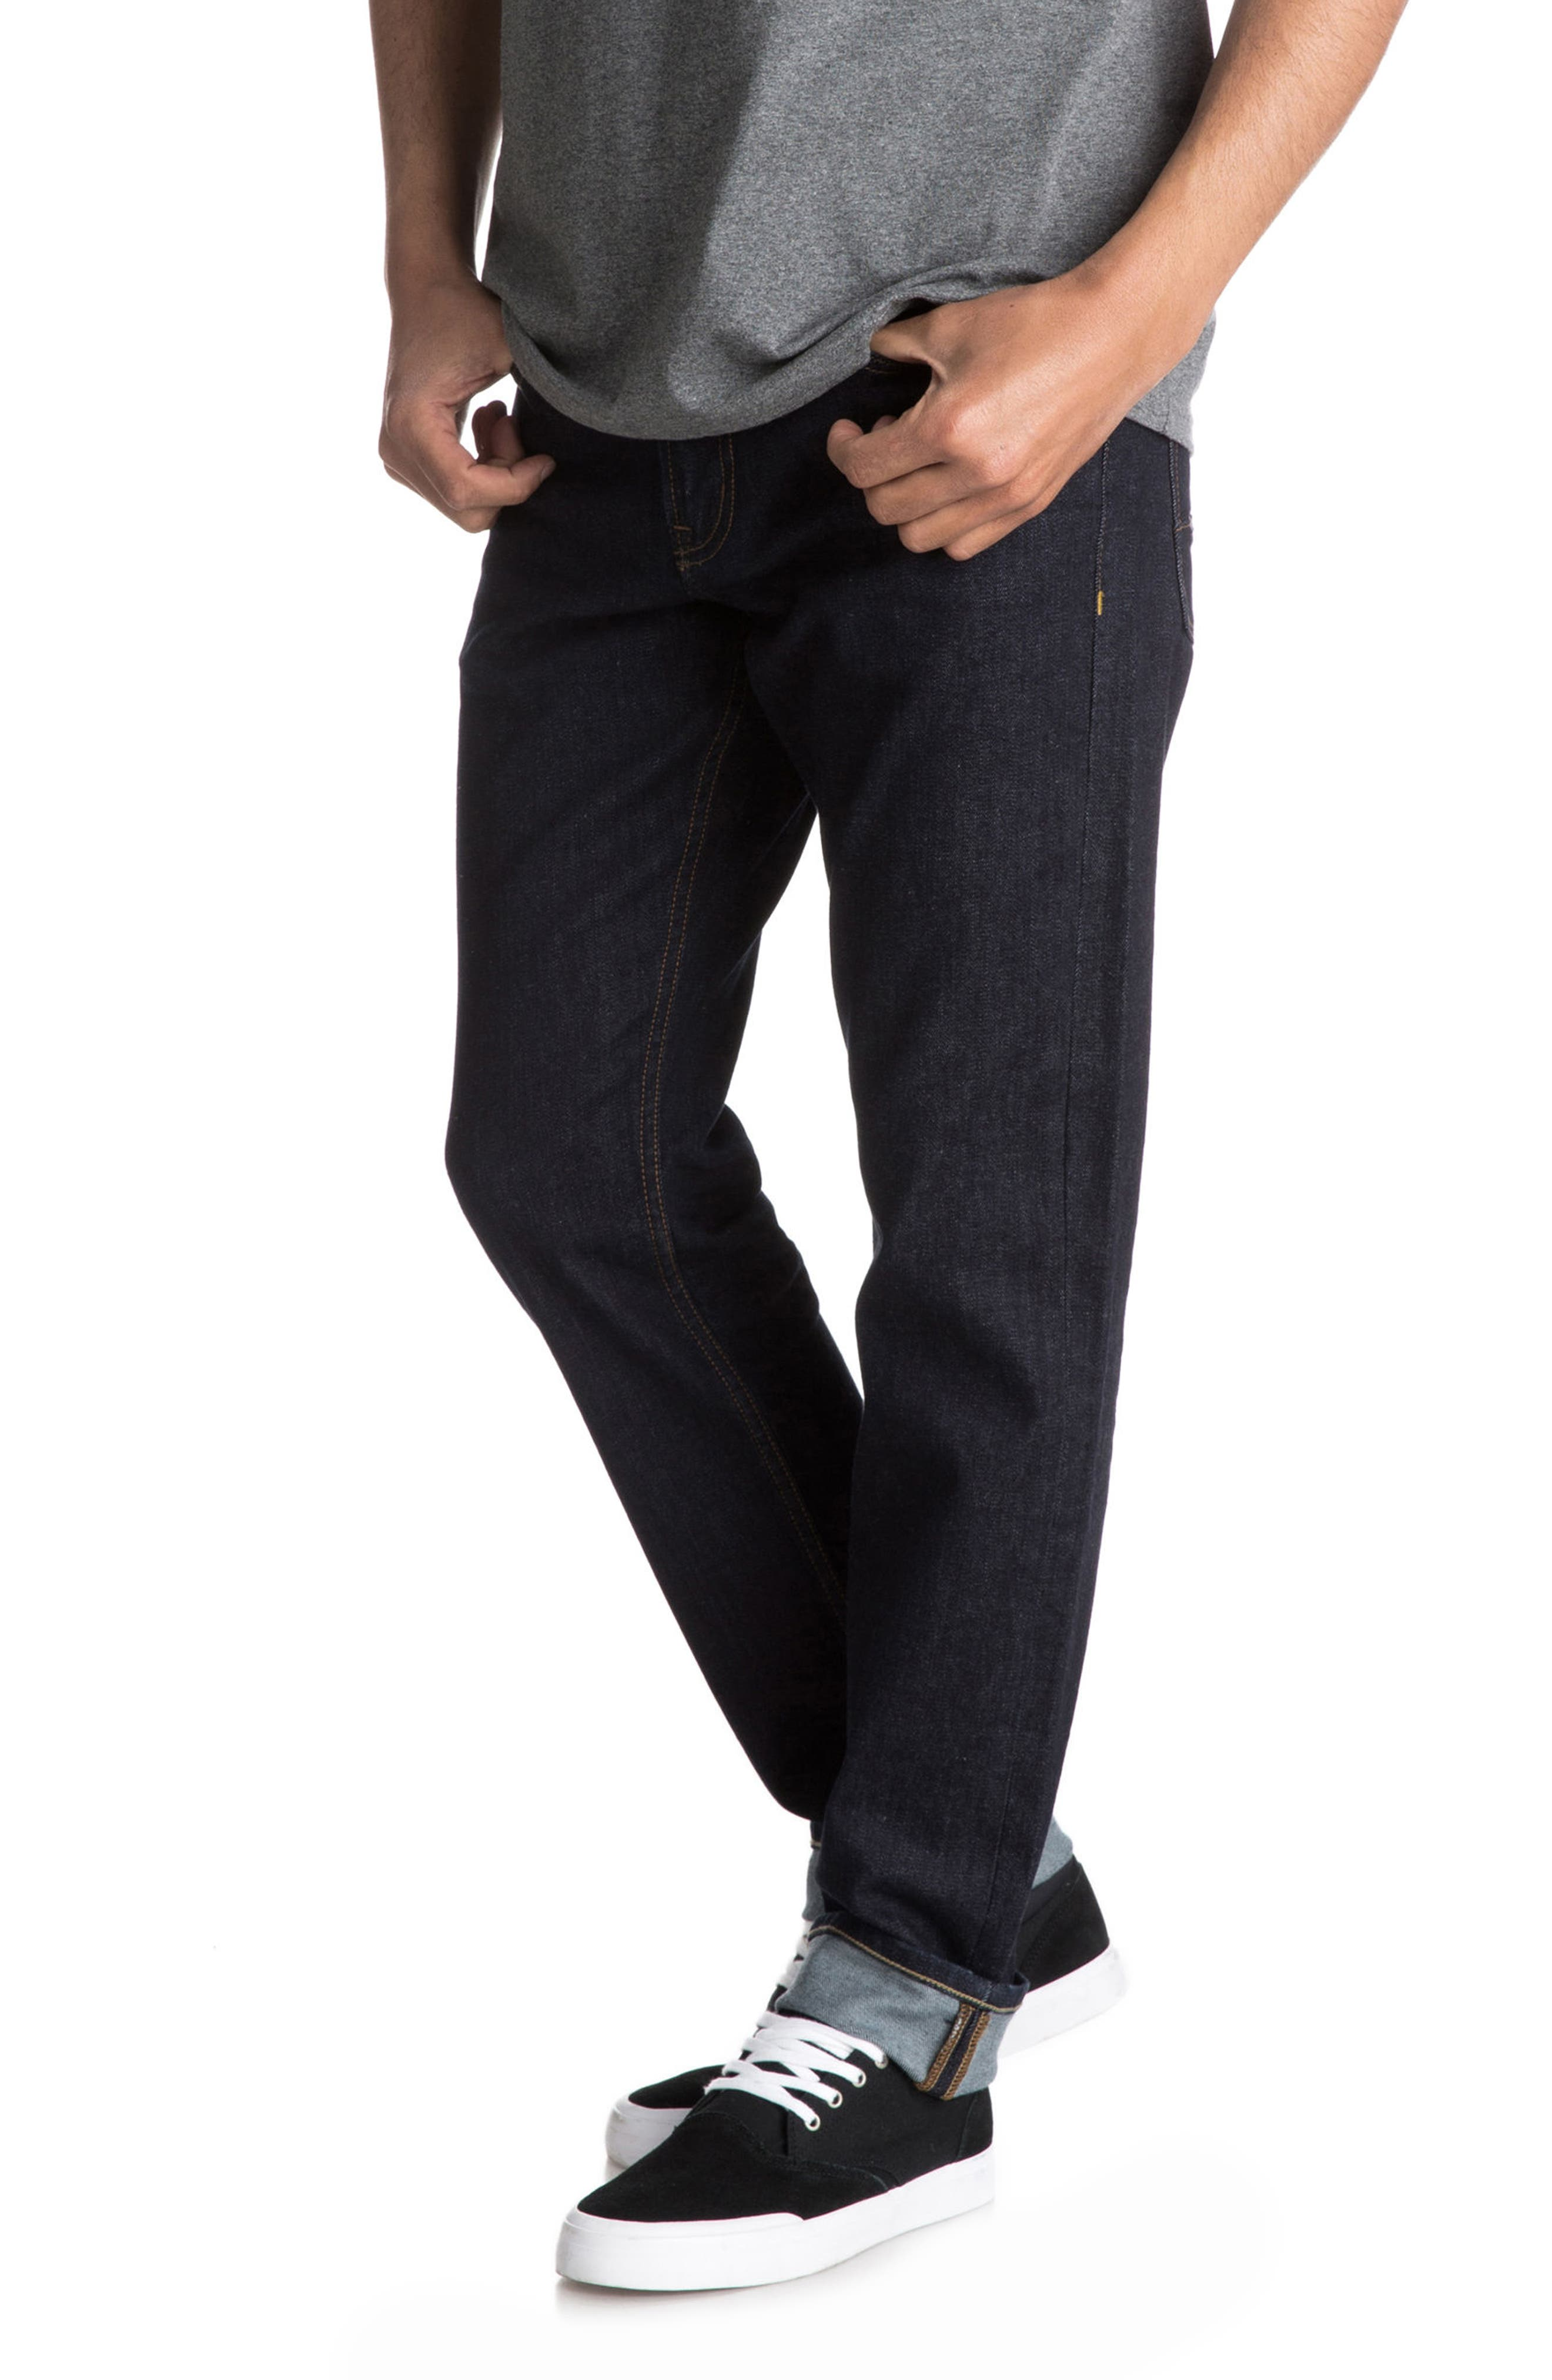 Revolver Slim Fit Jeans,                         Main,                         color, Rinse